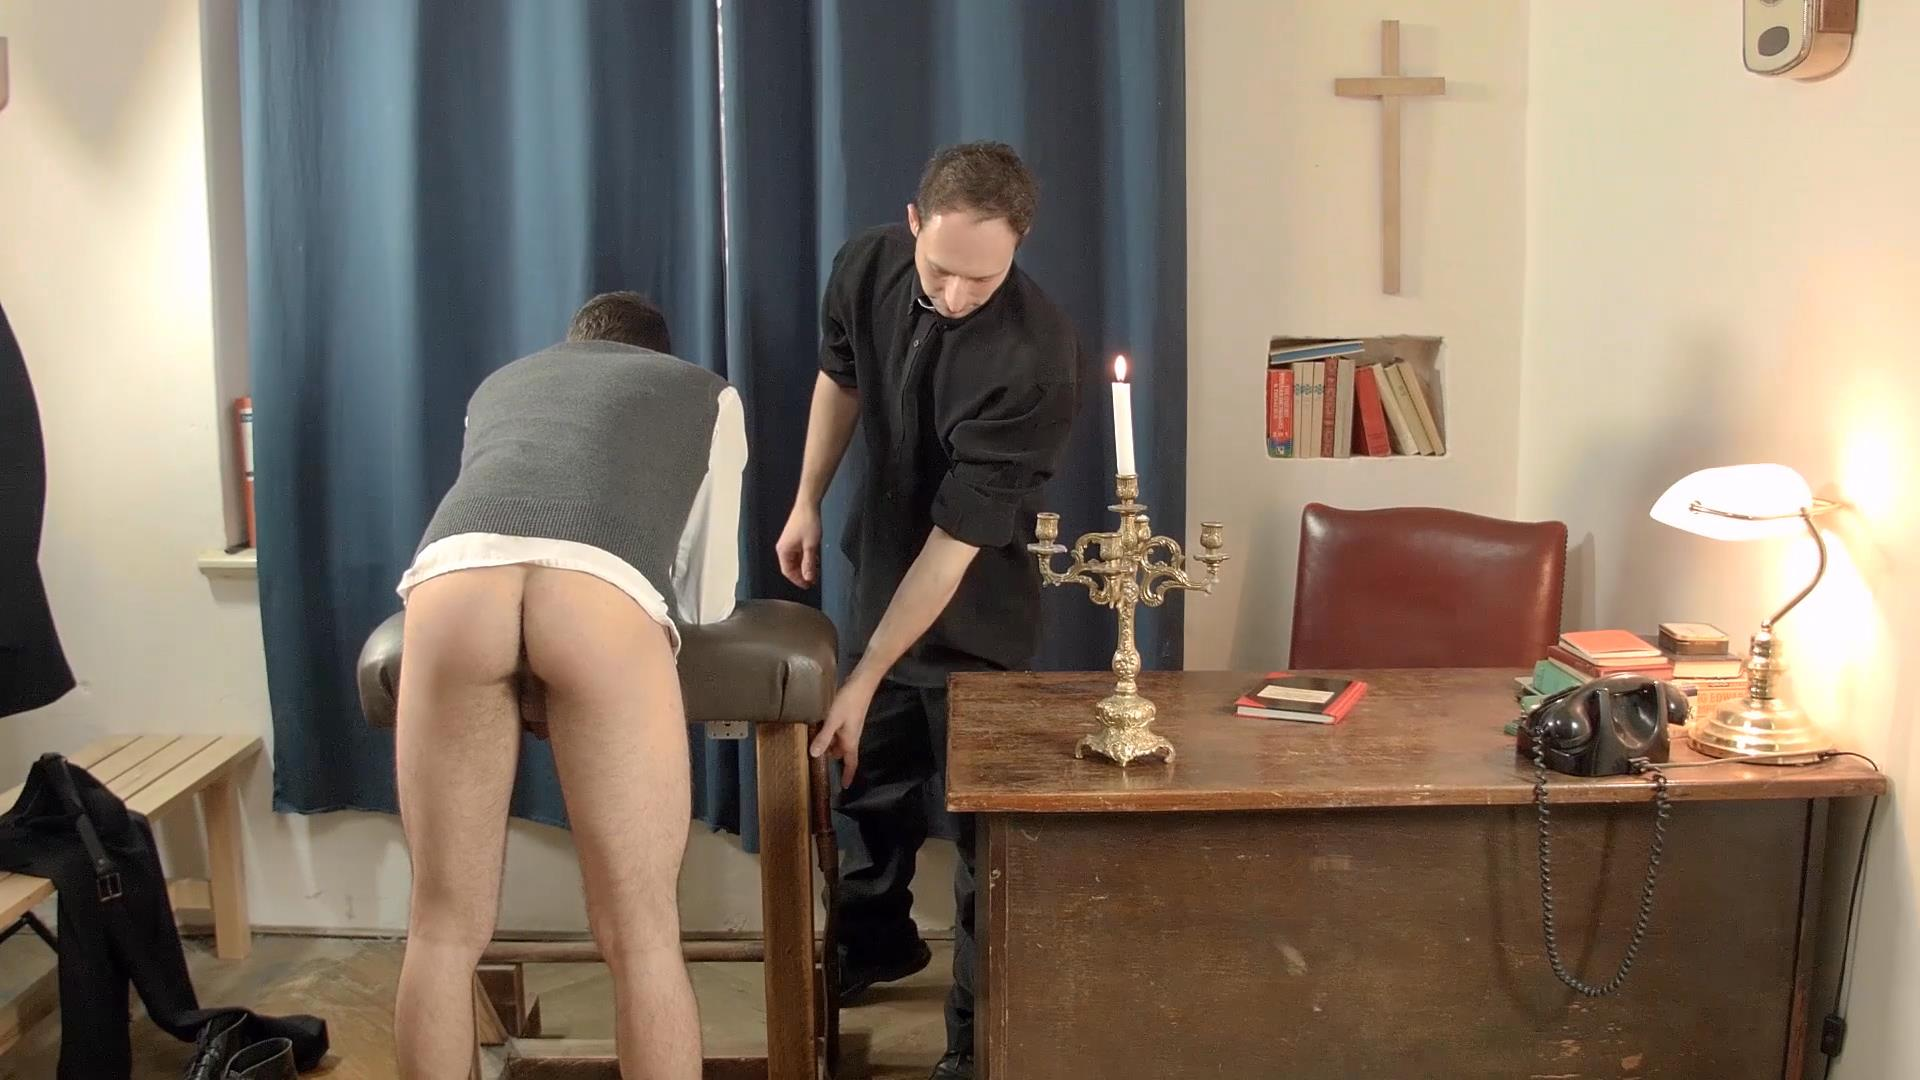 Bareback-Me-Daddy-Oscar-Hart-Priest-Fucks-Bareback-Amateur-Gay-Porn-02 College Boy Gets Fucked Bareback By An Older Priest With A Big Uncut Cock